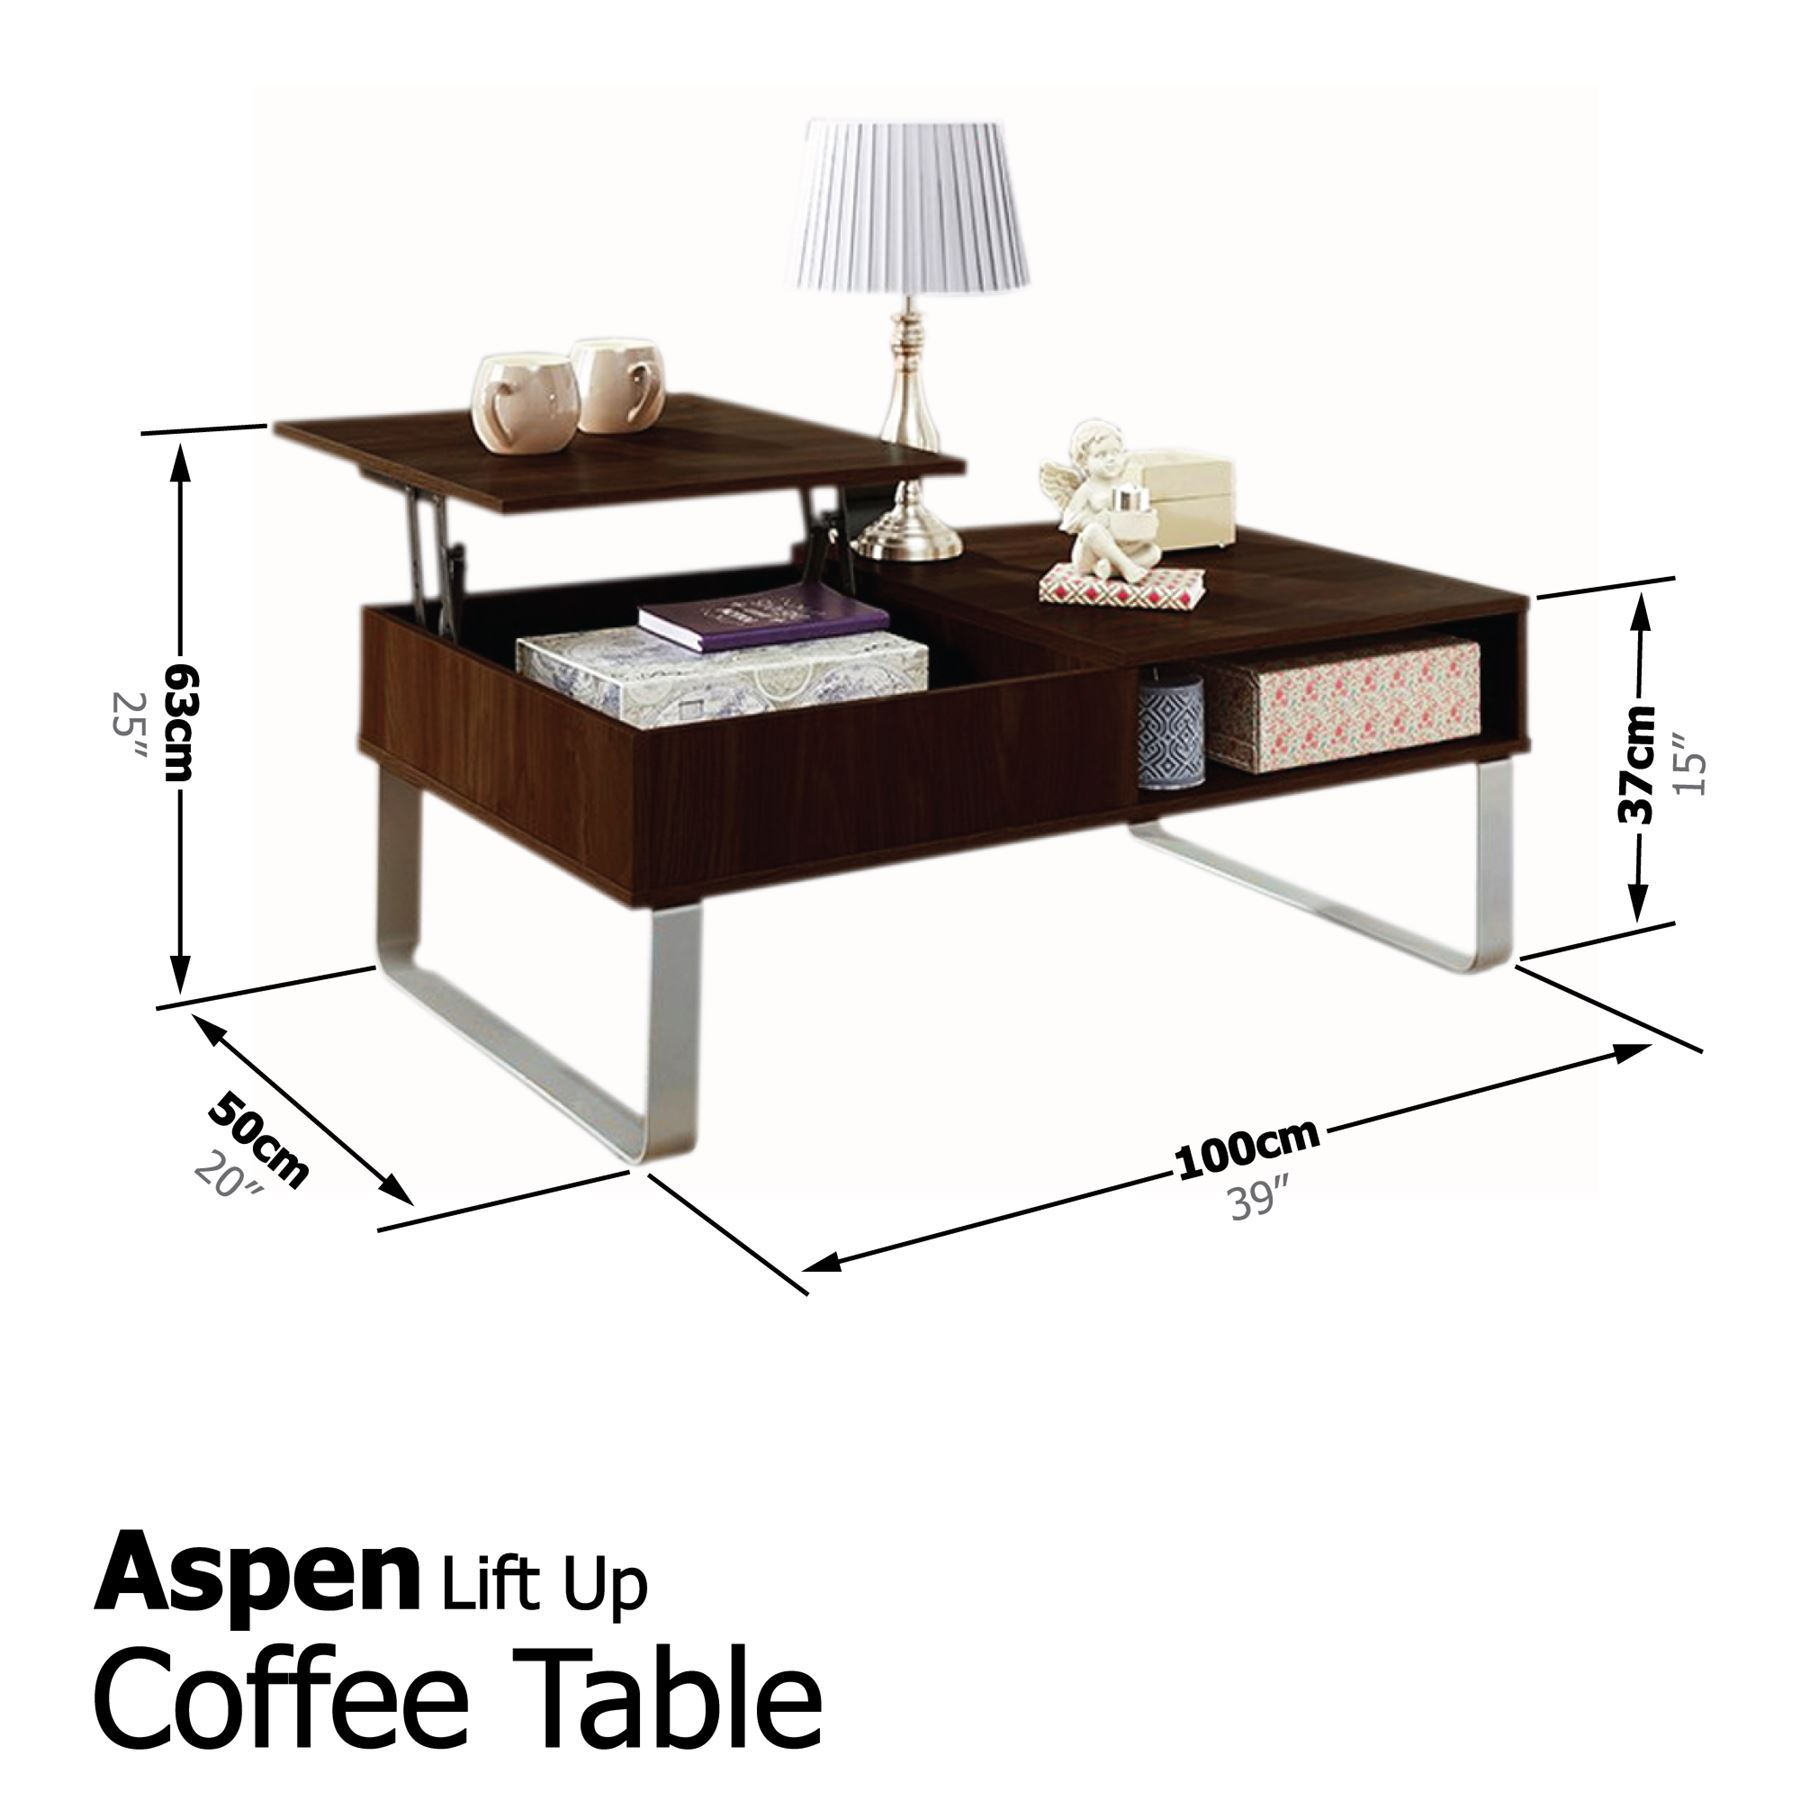 Coffee table that lifts up elegant table outdoor picture more detailed picture about lift up Lift up coffee table ikea